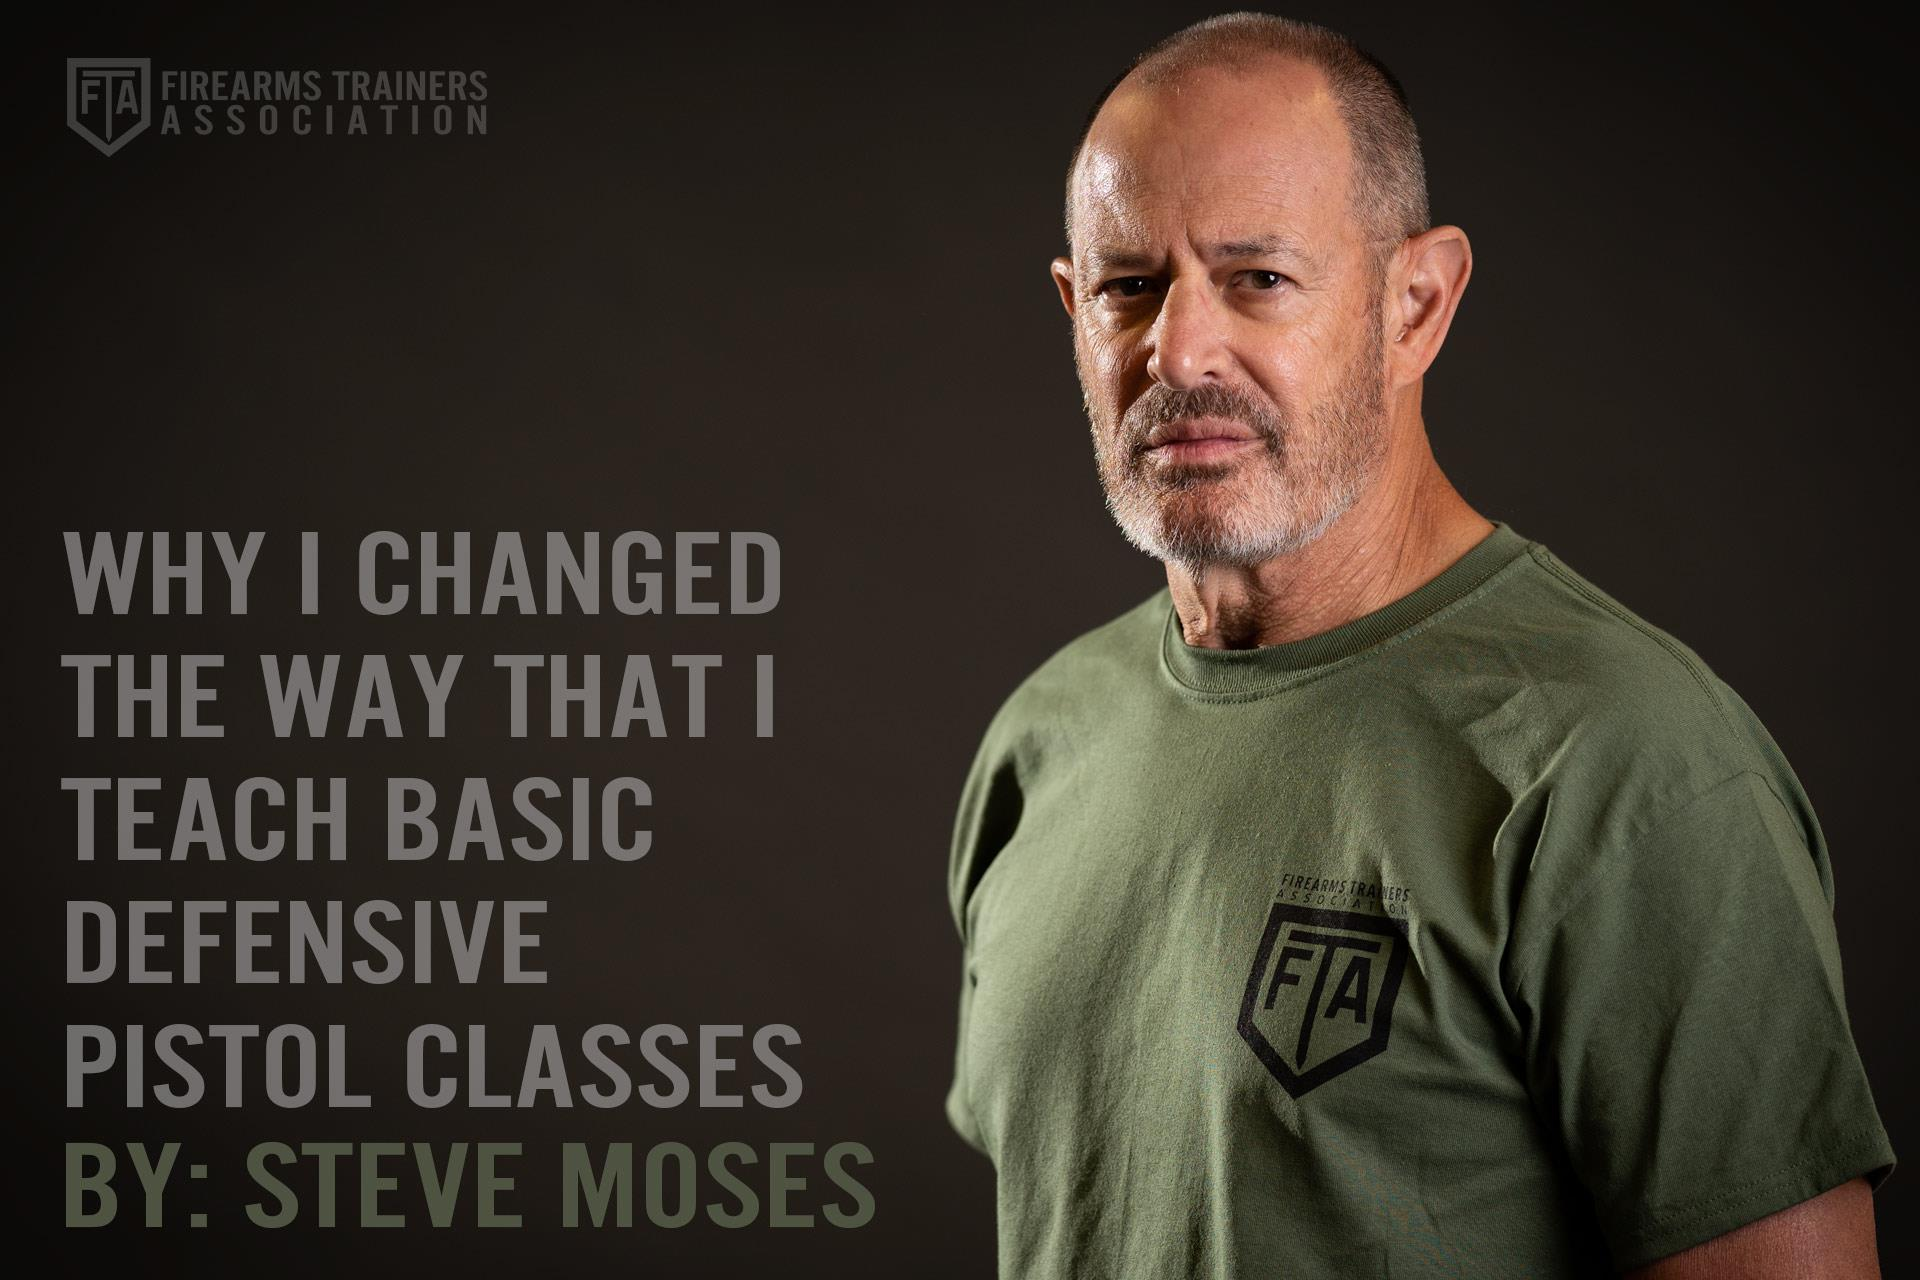 WHY I CHANGED THE WAY THAT I TEACH BASIC DEFENSIVE PISTOL CLASSES